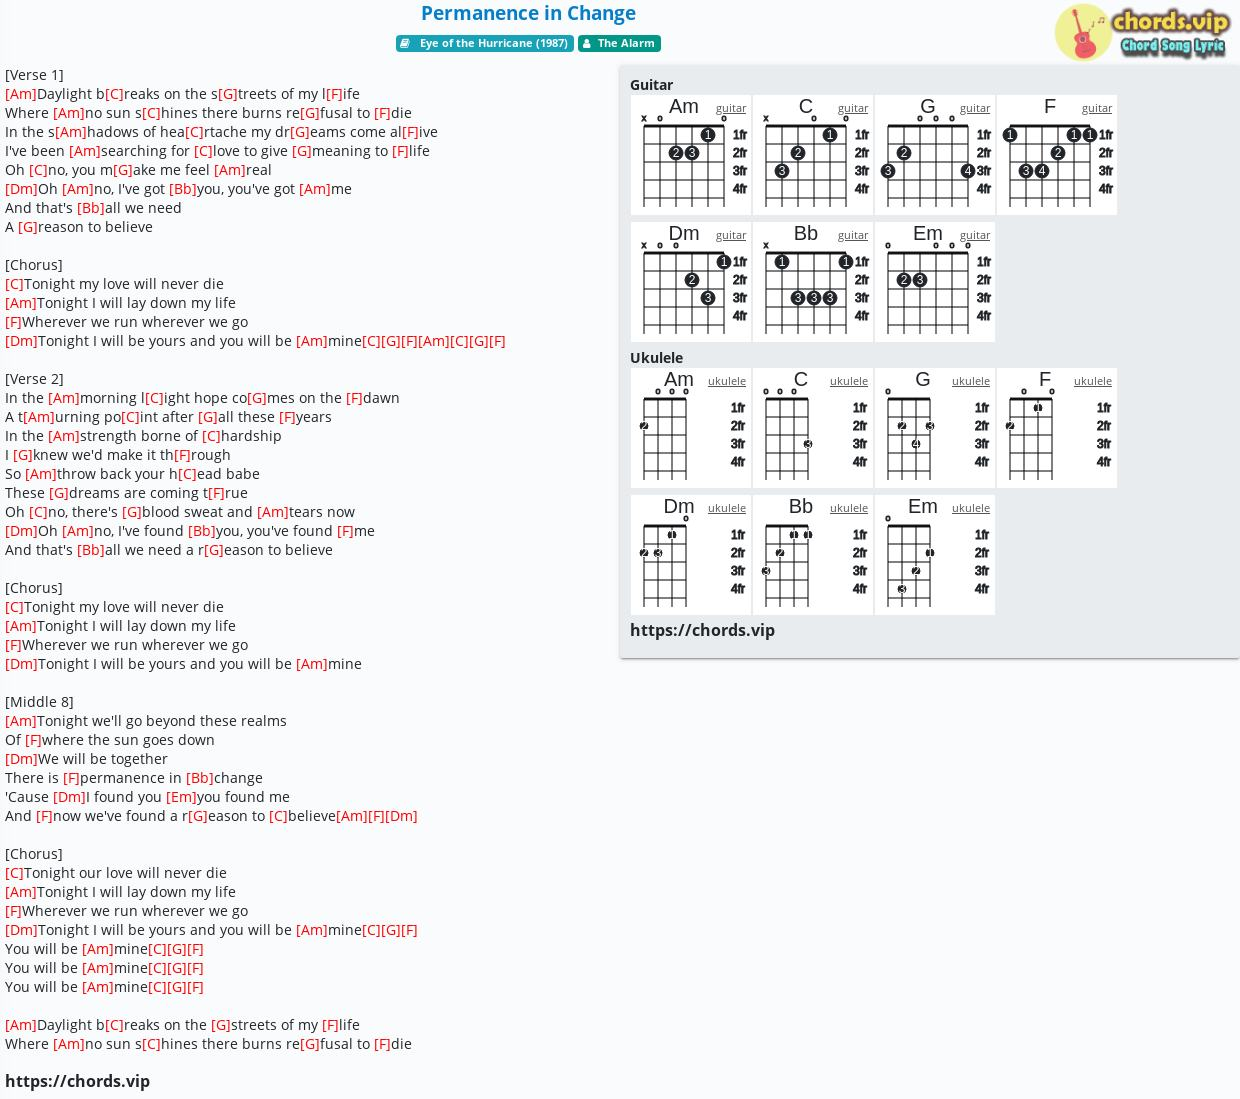 Chord Permanence In Change The Alarm Tab Song Lyric Sheet Guitar Ukulele Chords Vip Find your perfect arrangement and access a variety of transpositions so you can print and play instantly, anywhere. chords vip